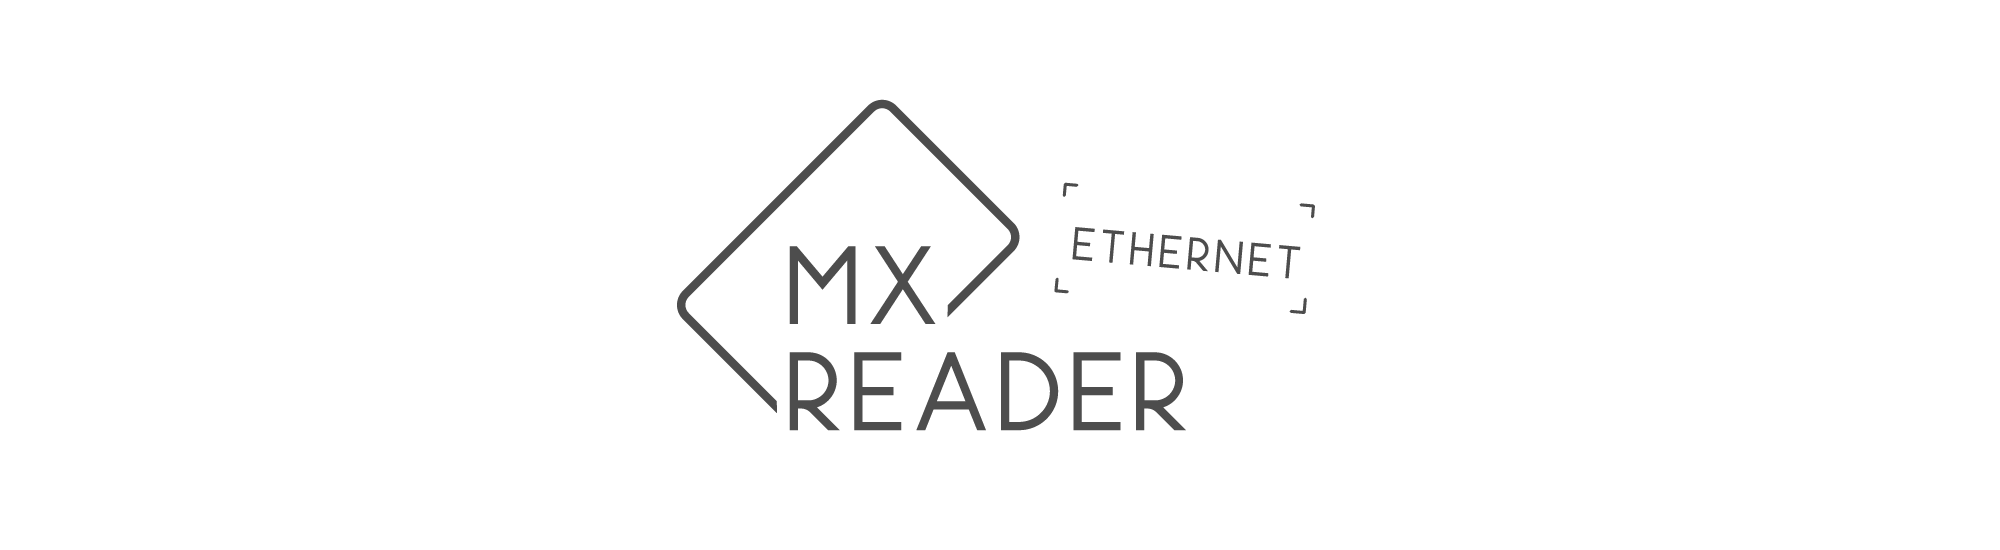 MXreader ethernet